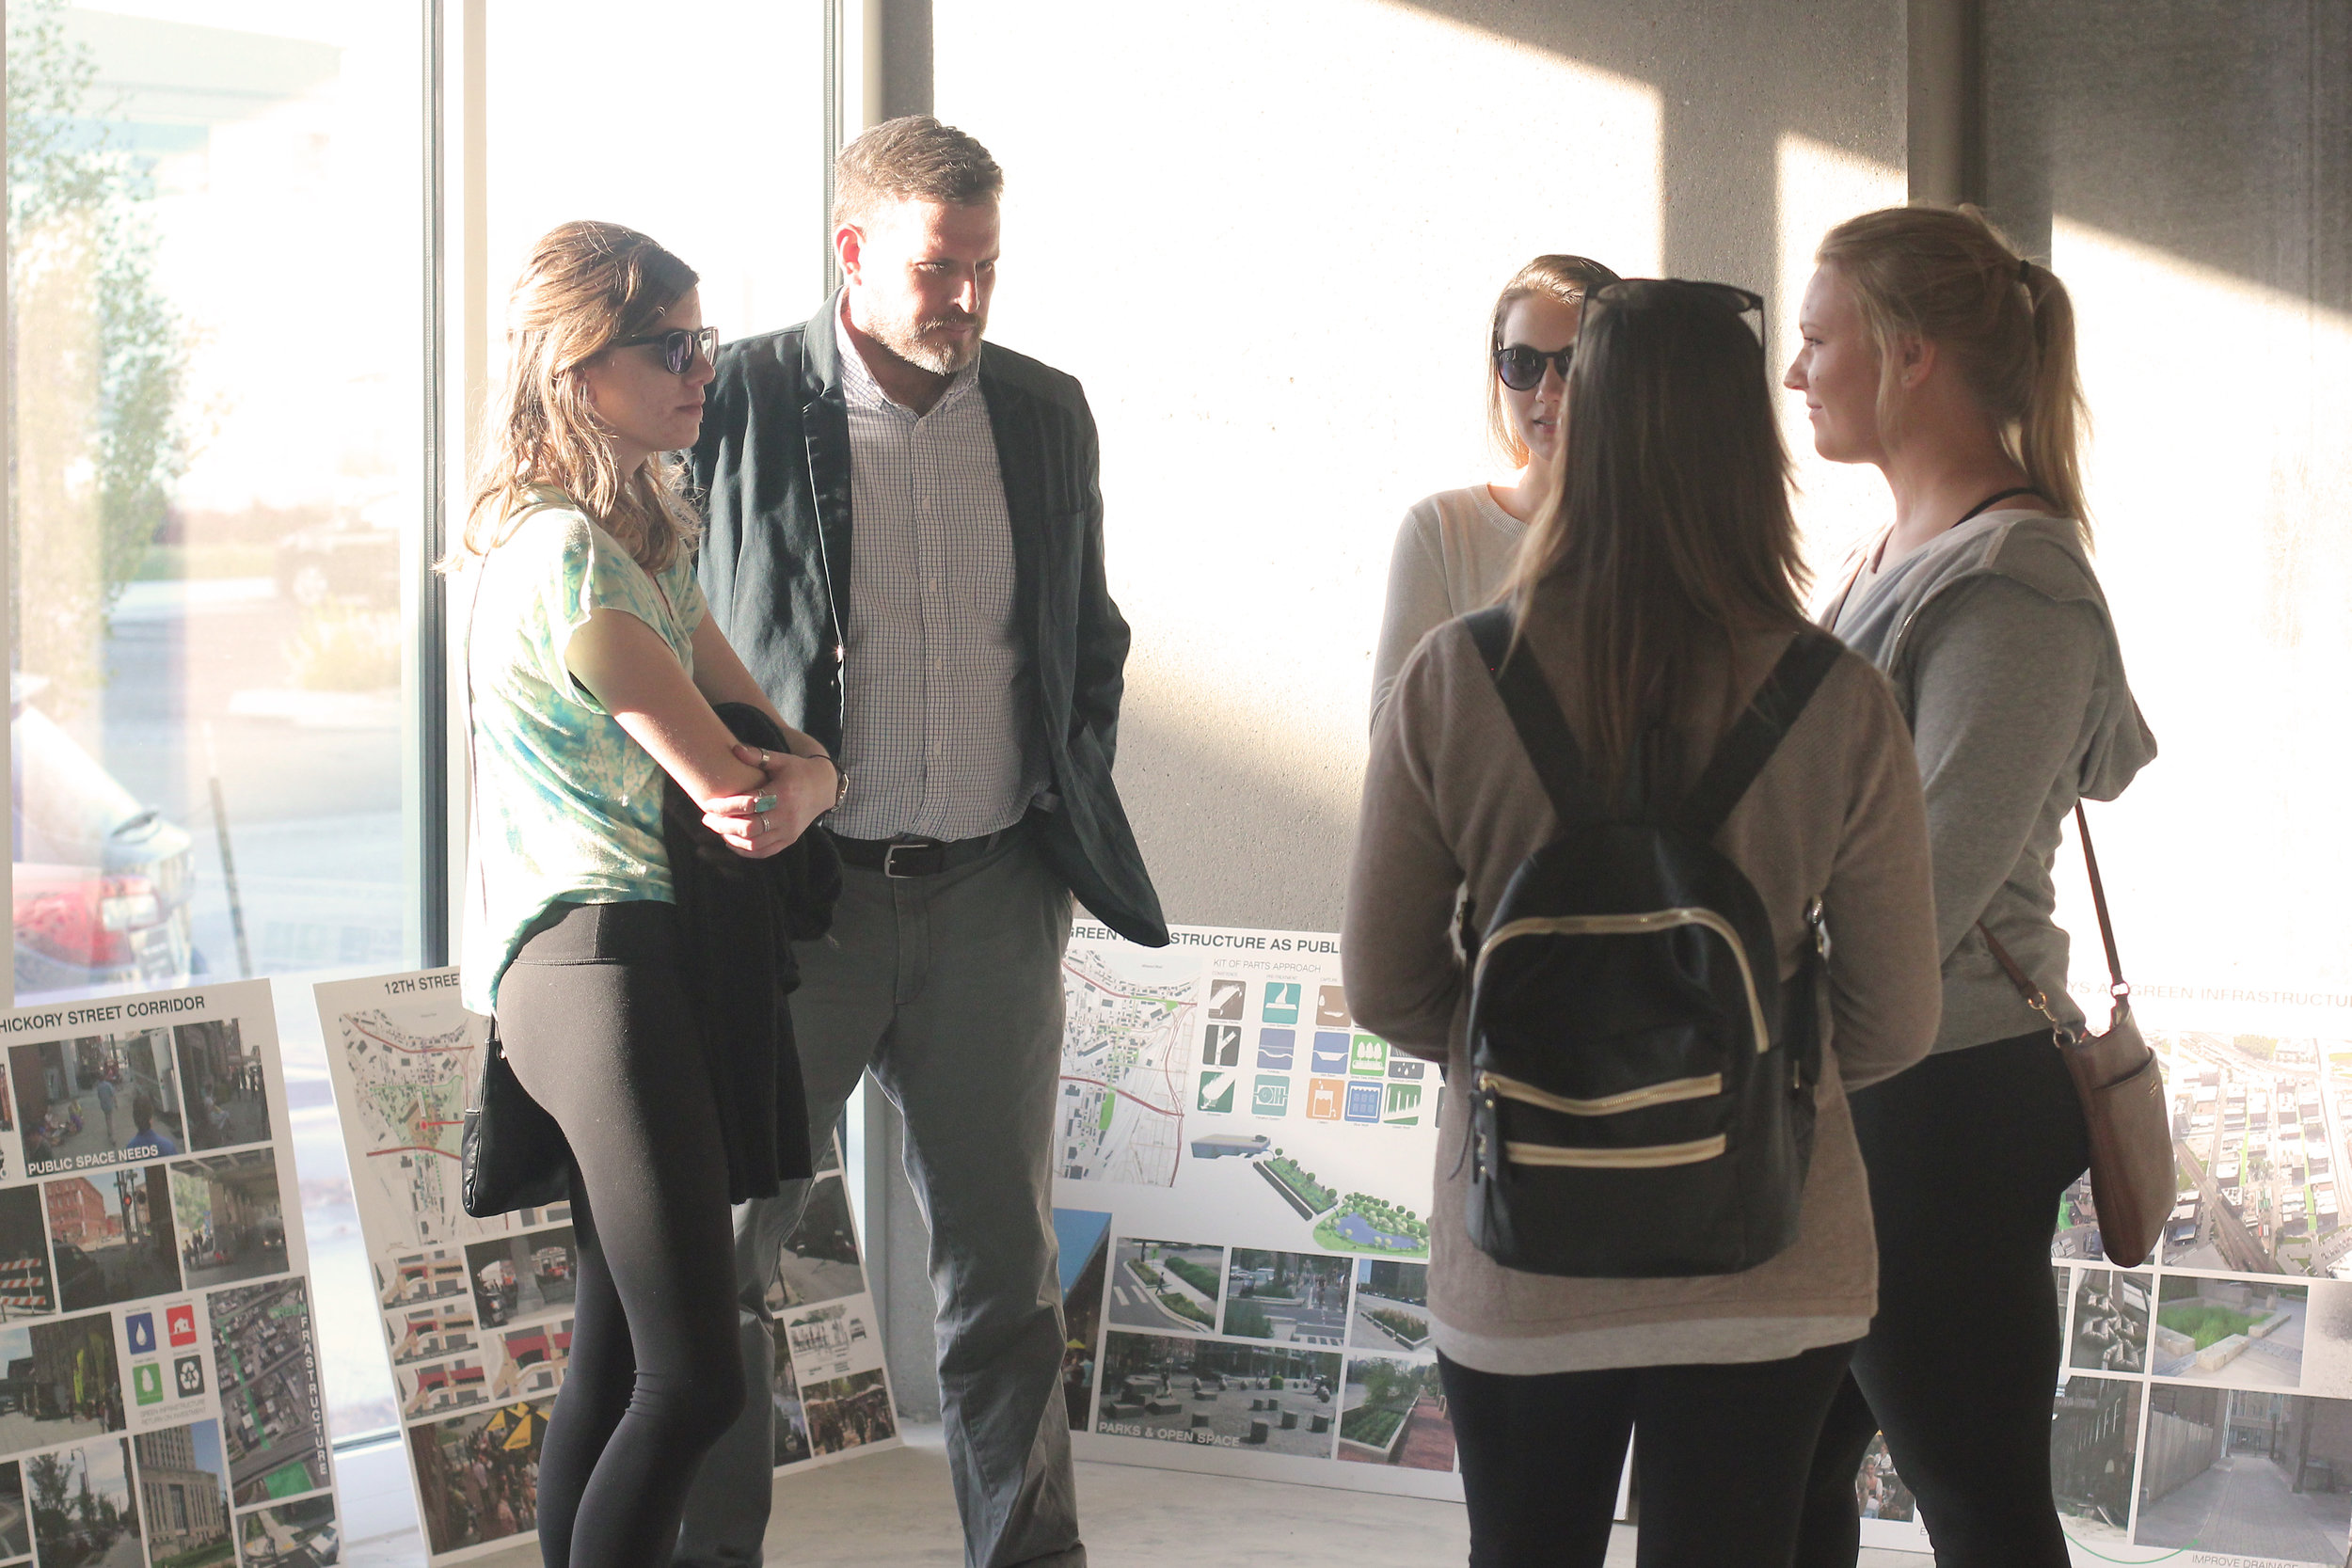 KCDC students visited a public meeting on Phronesis and KEM Studio's proposed Streetscape Plan and Wayfinding Plan for the West Bottoms in preparation for their next studio project.